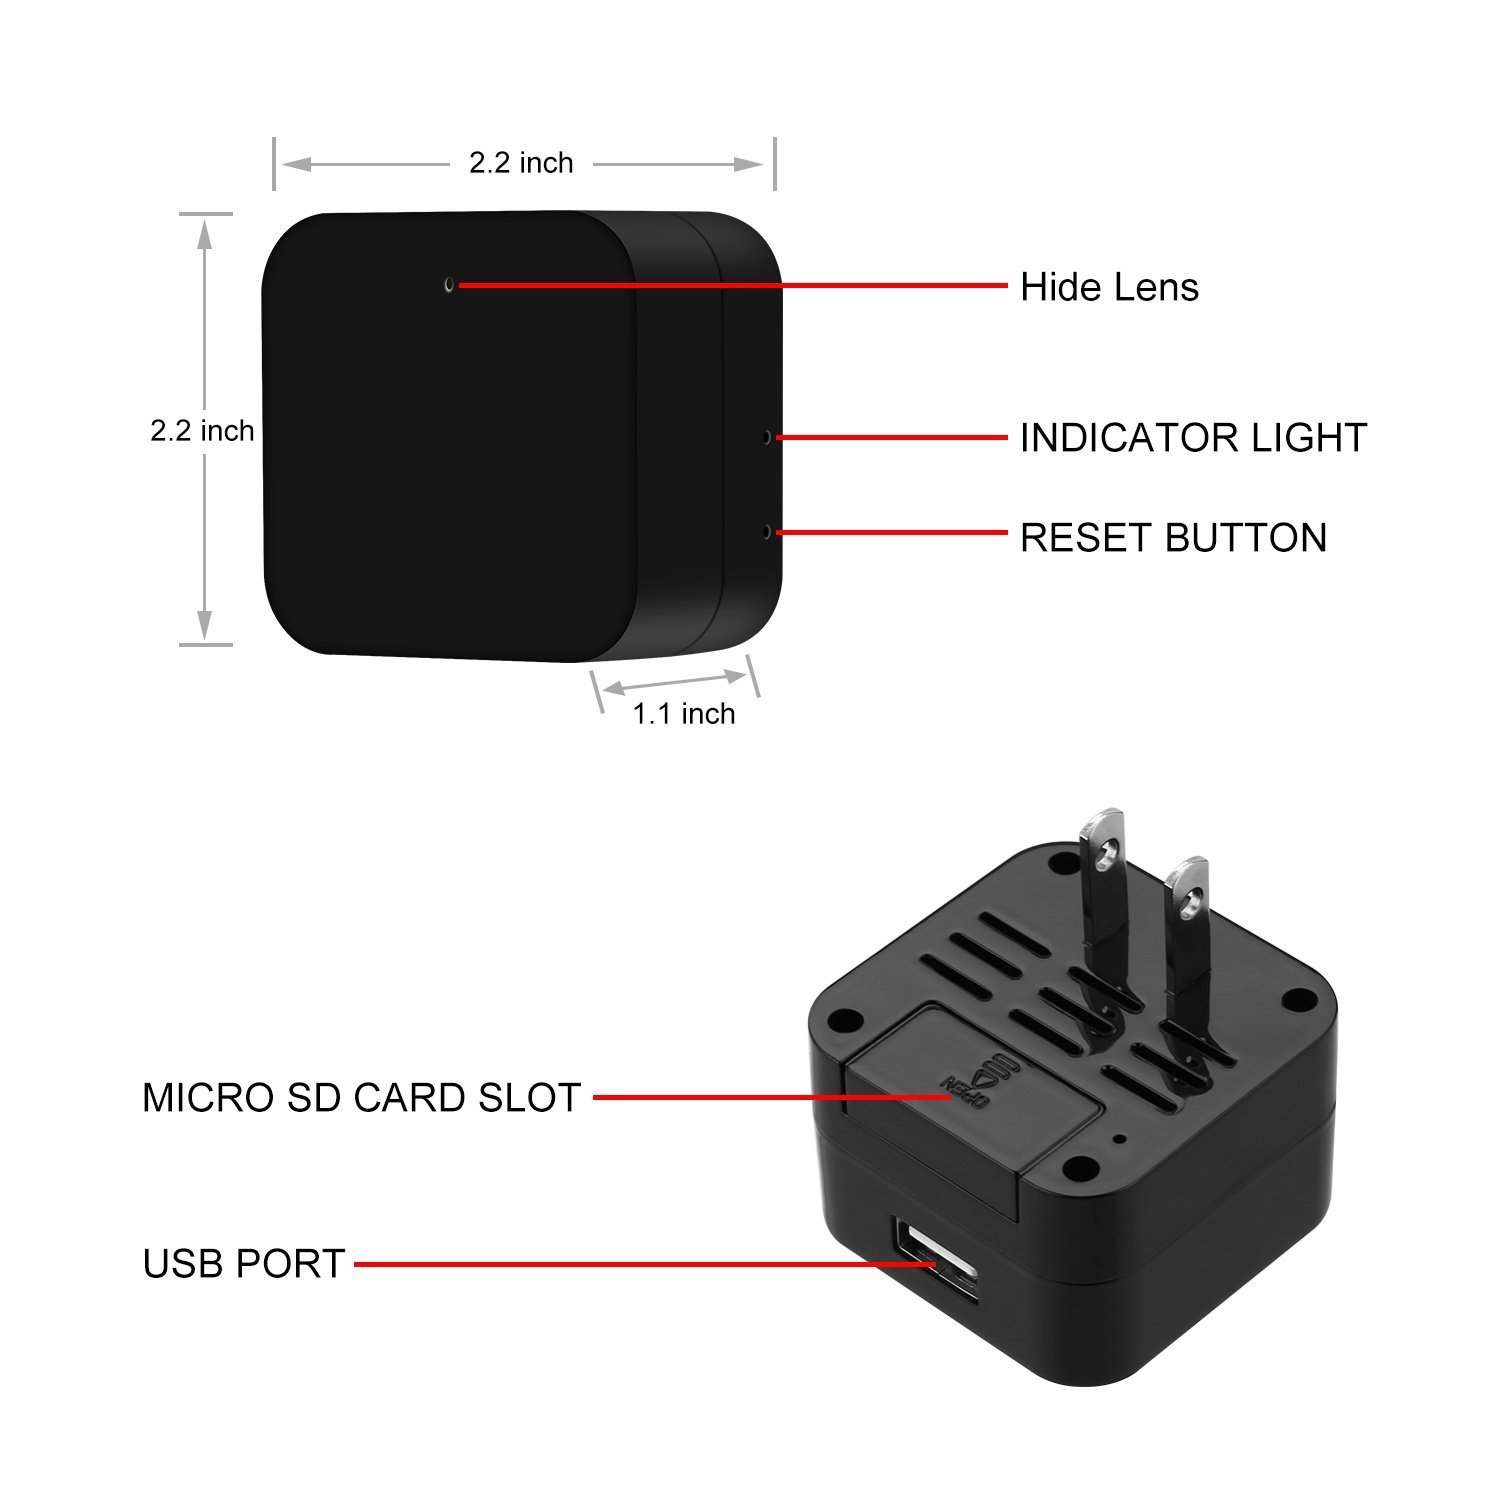 Mini Wireless IP Camera -Hidden Camera -HD 1080P-Wifi Spy Camera With Remote View App- Wall Charger Plug Motion Detection Cam For Home Security Surveillance by Bescar (Image #3)